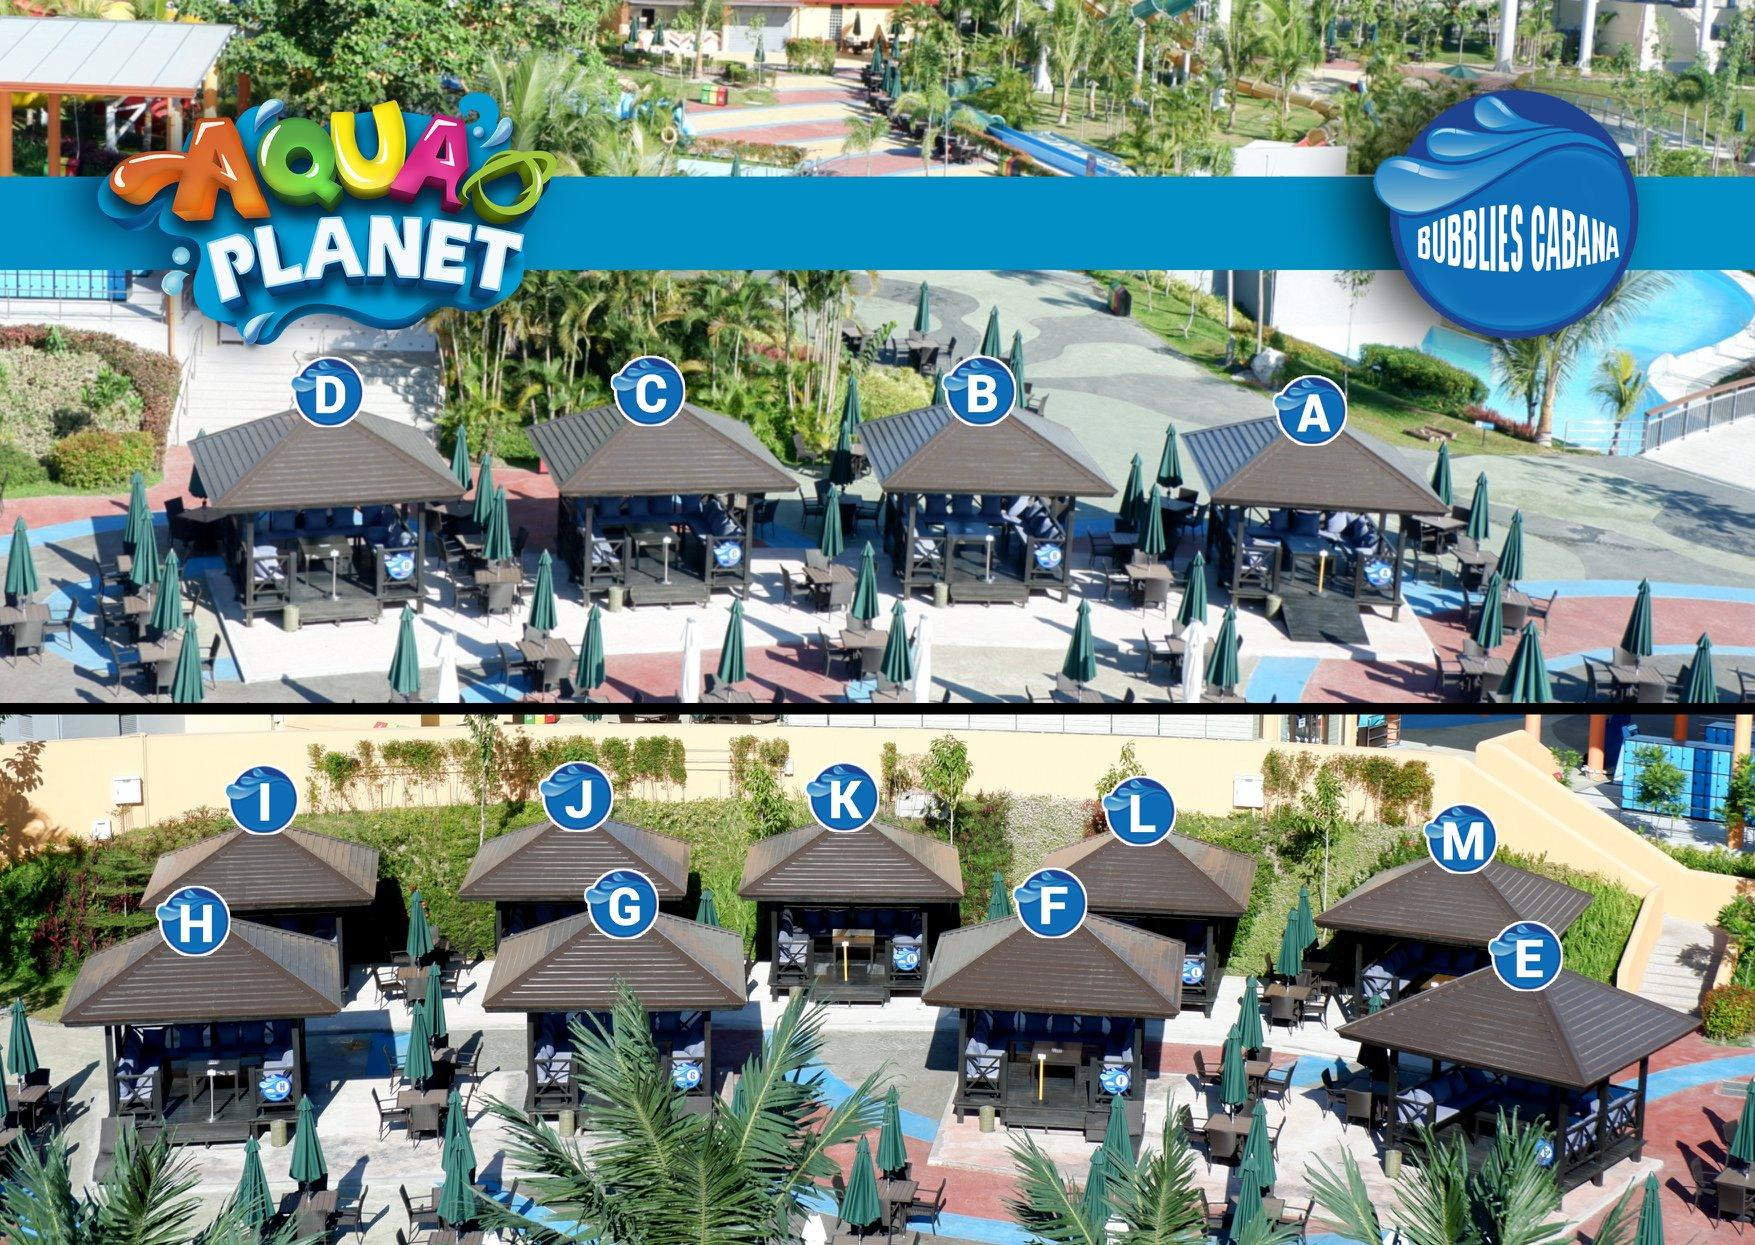 Bubblies Cabanas are located near the kiddie area. Relax while you look after your kids with the awesome array of day accommodation choices!